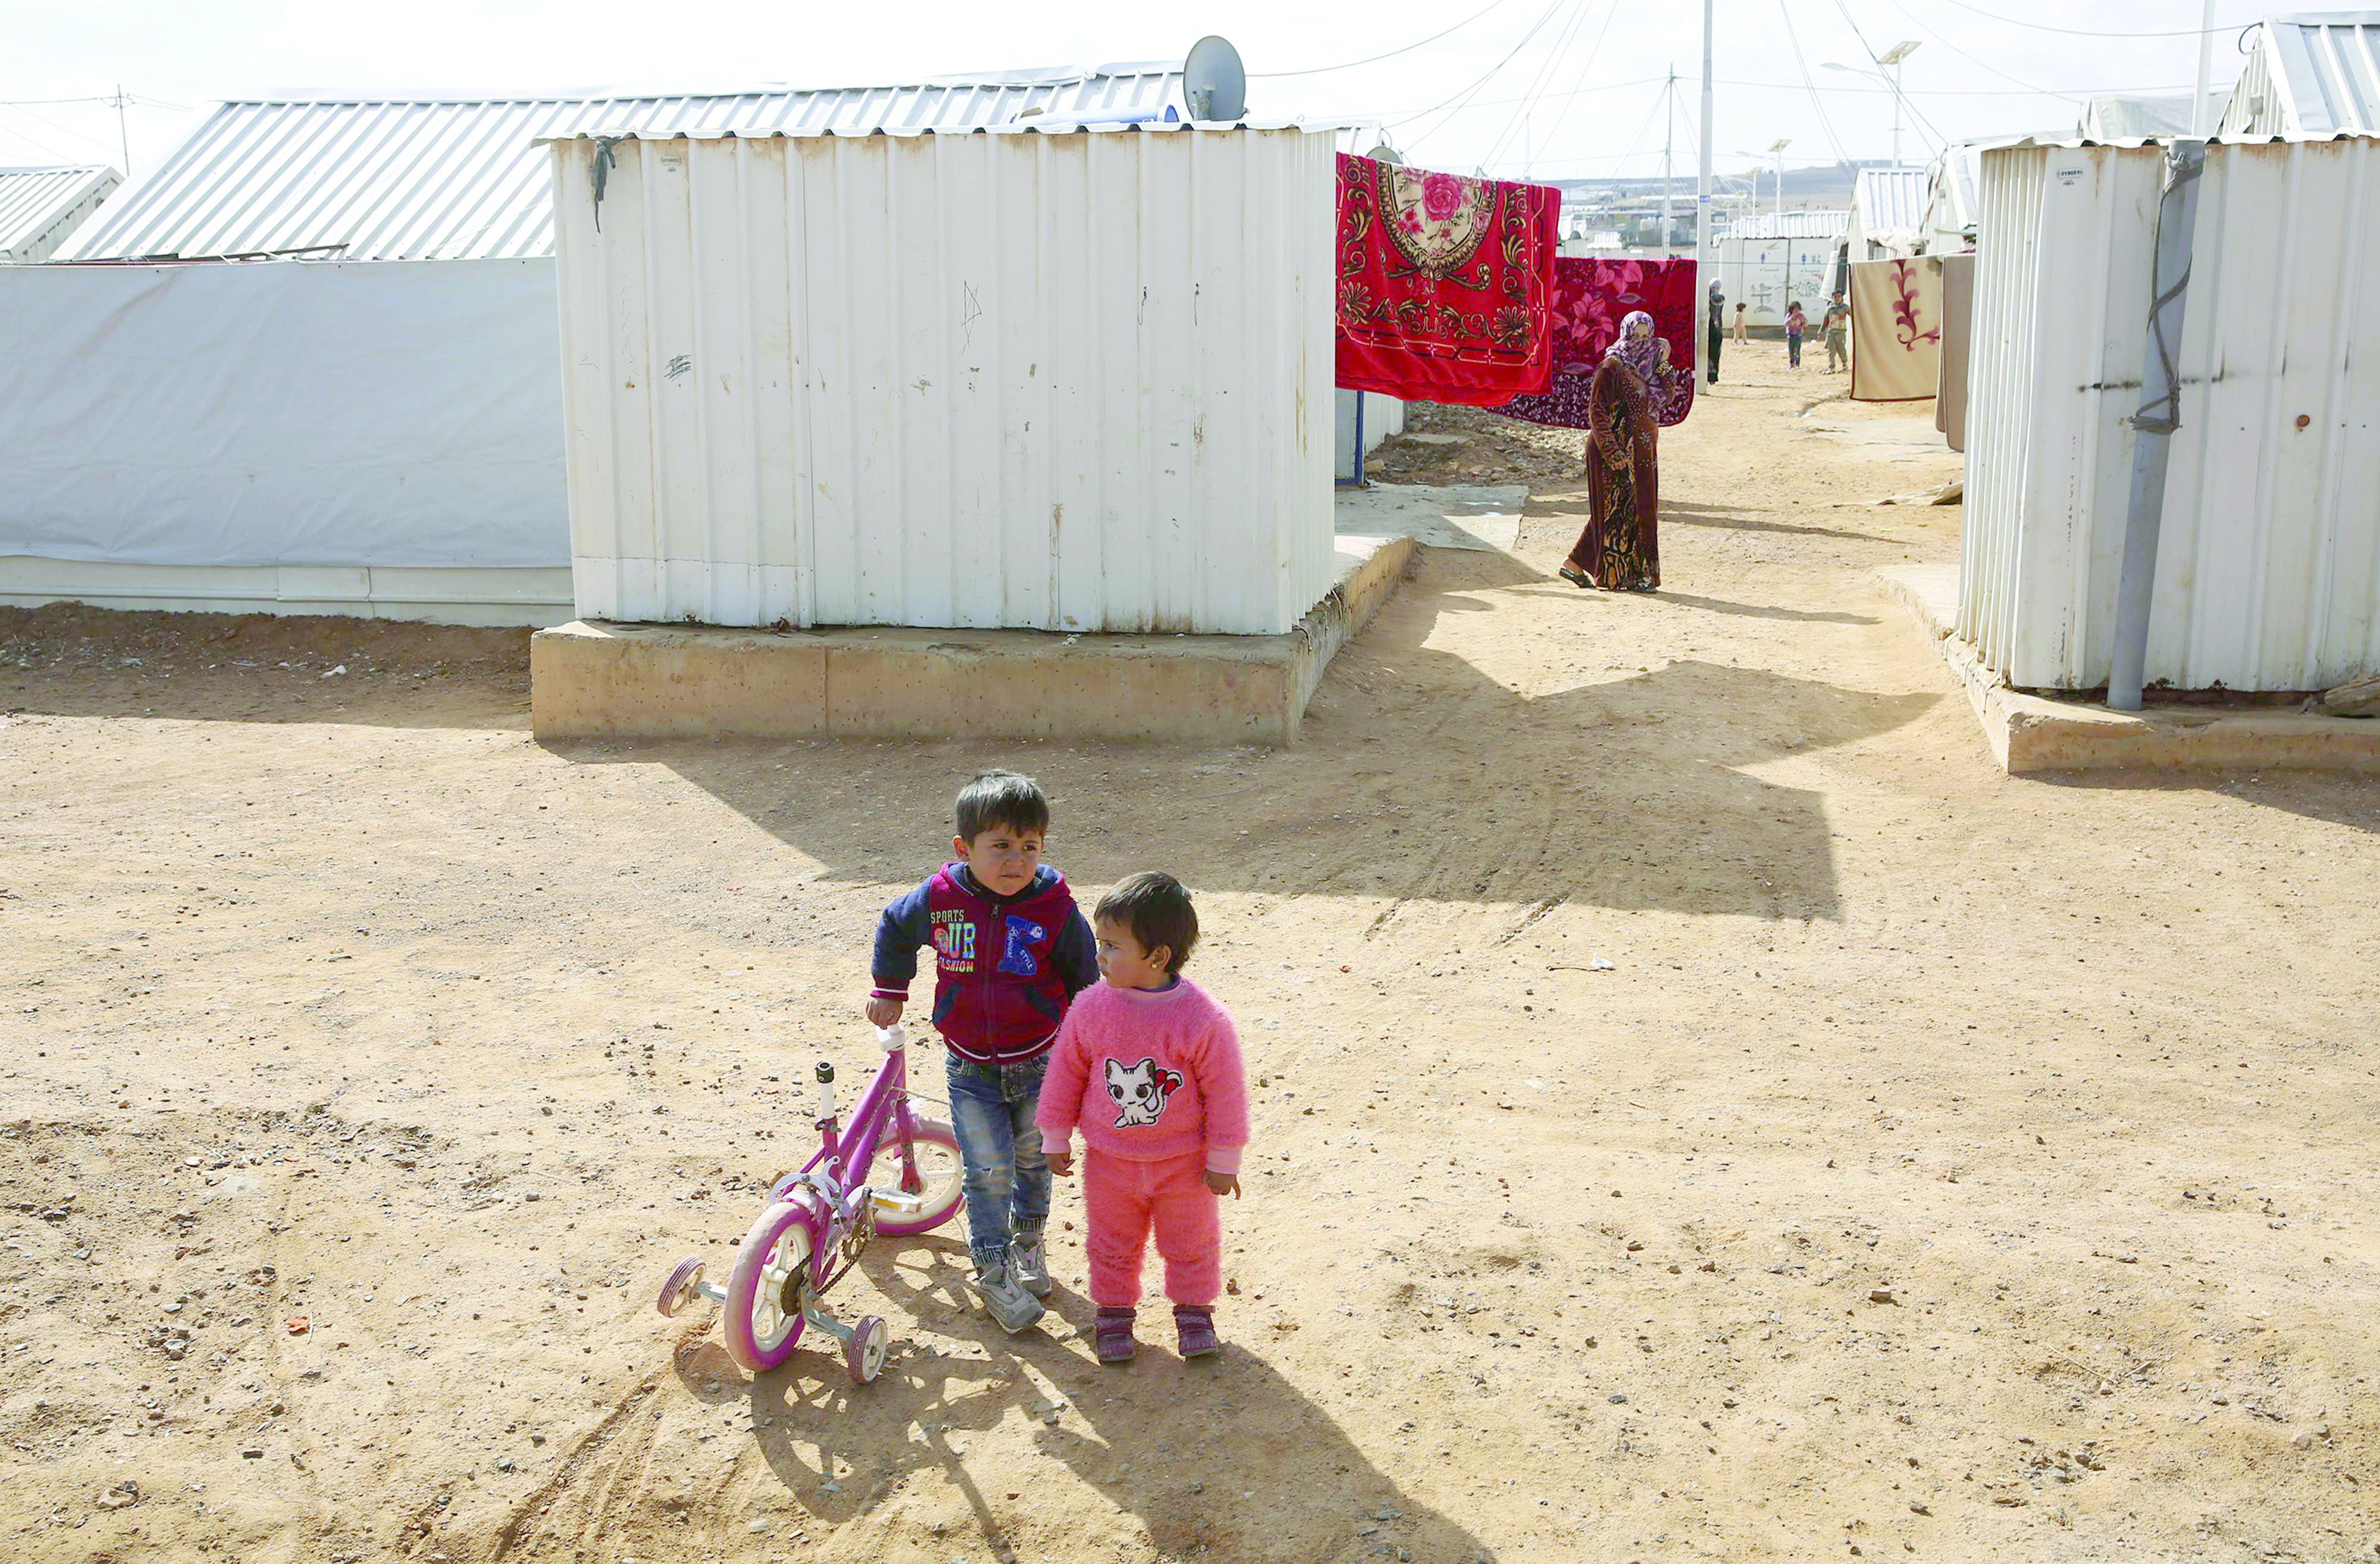 Two children play with a bicycle at the Azraq camp for Syrian refugees in Jordan. (AP)